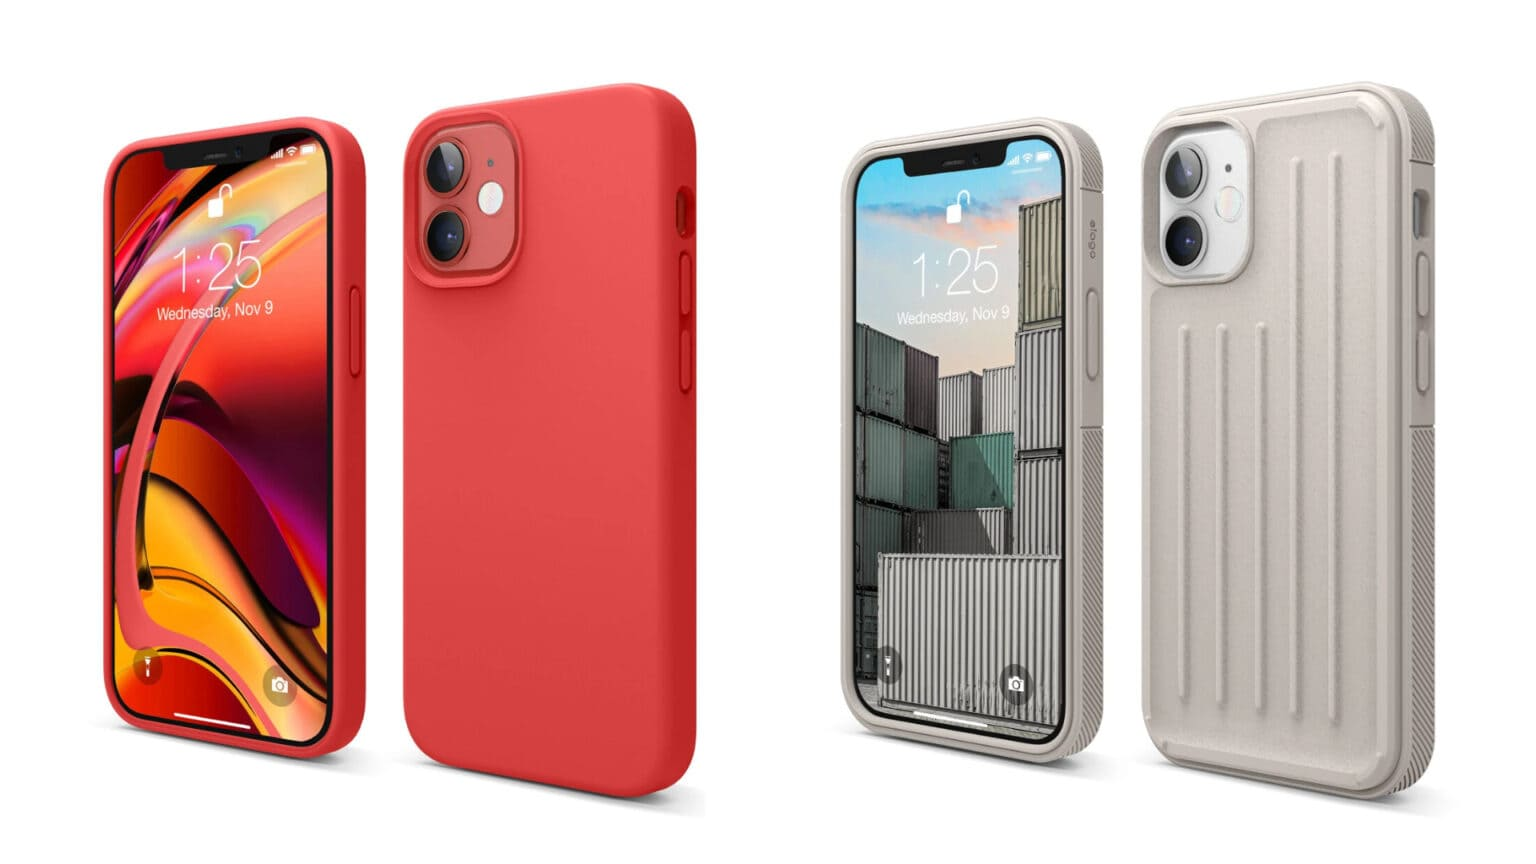 Elago's new iPhone 12 cases